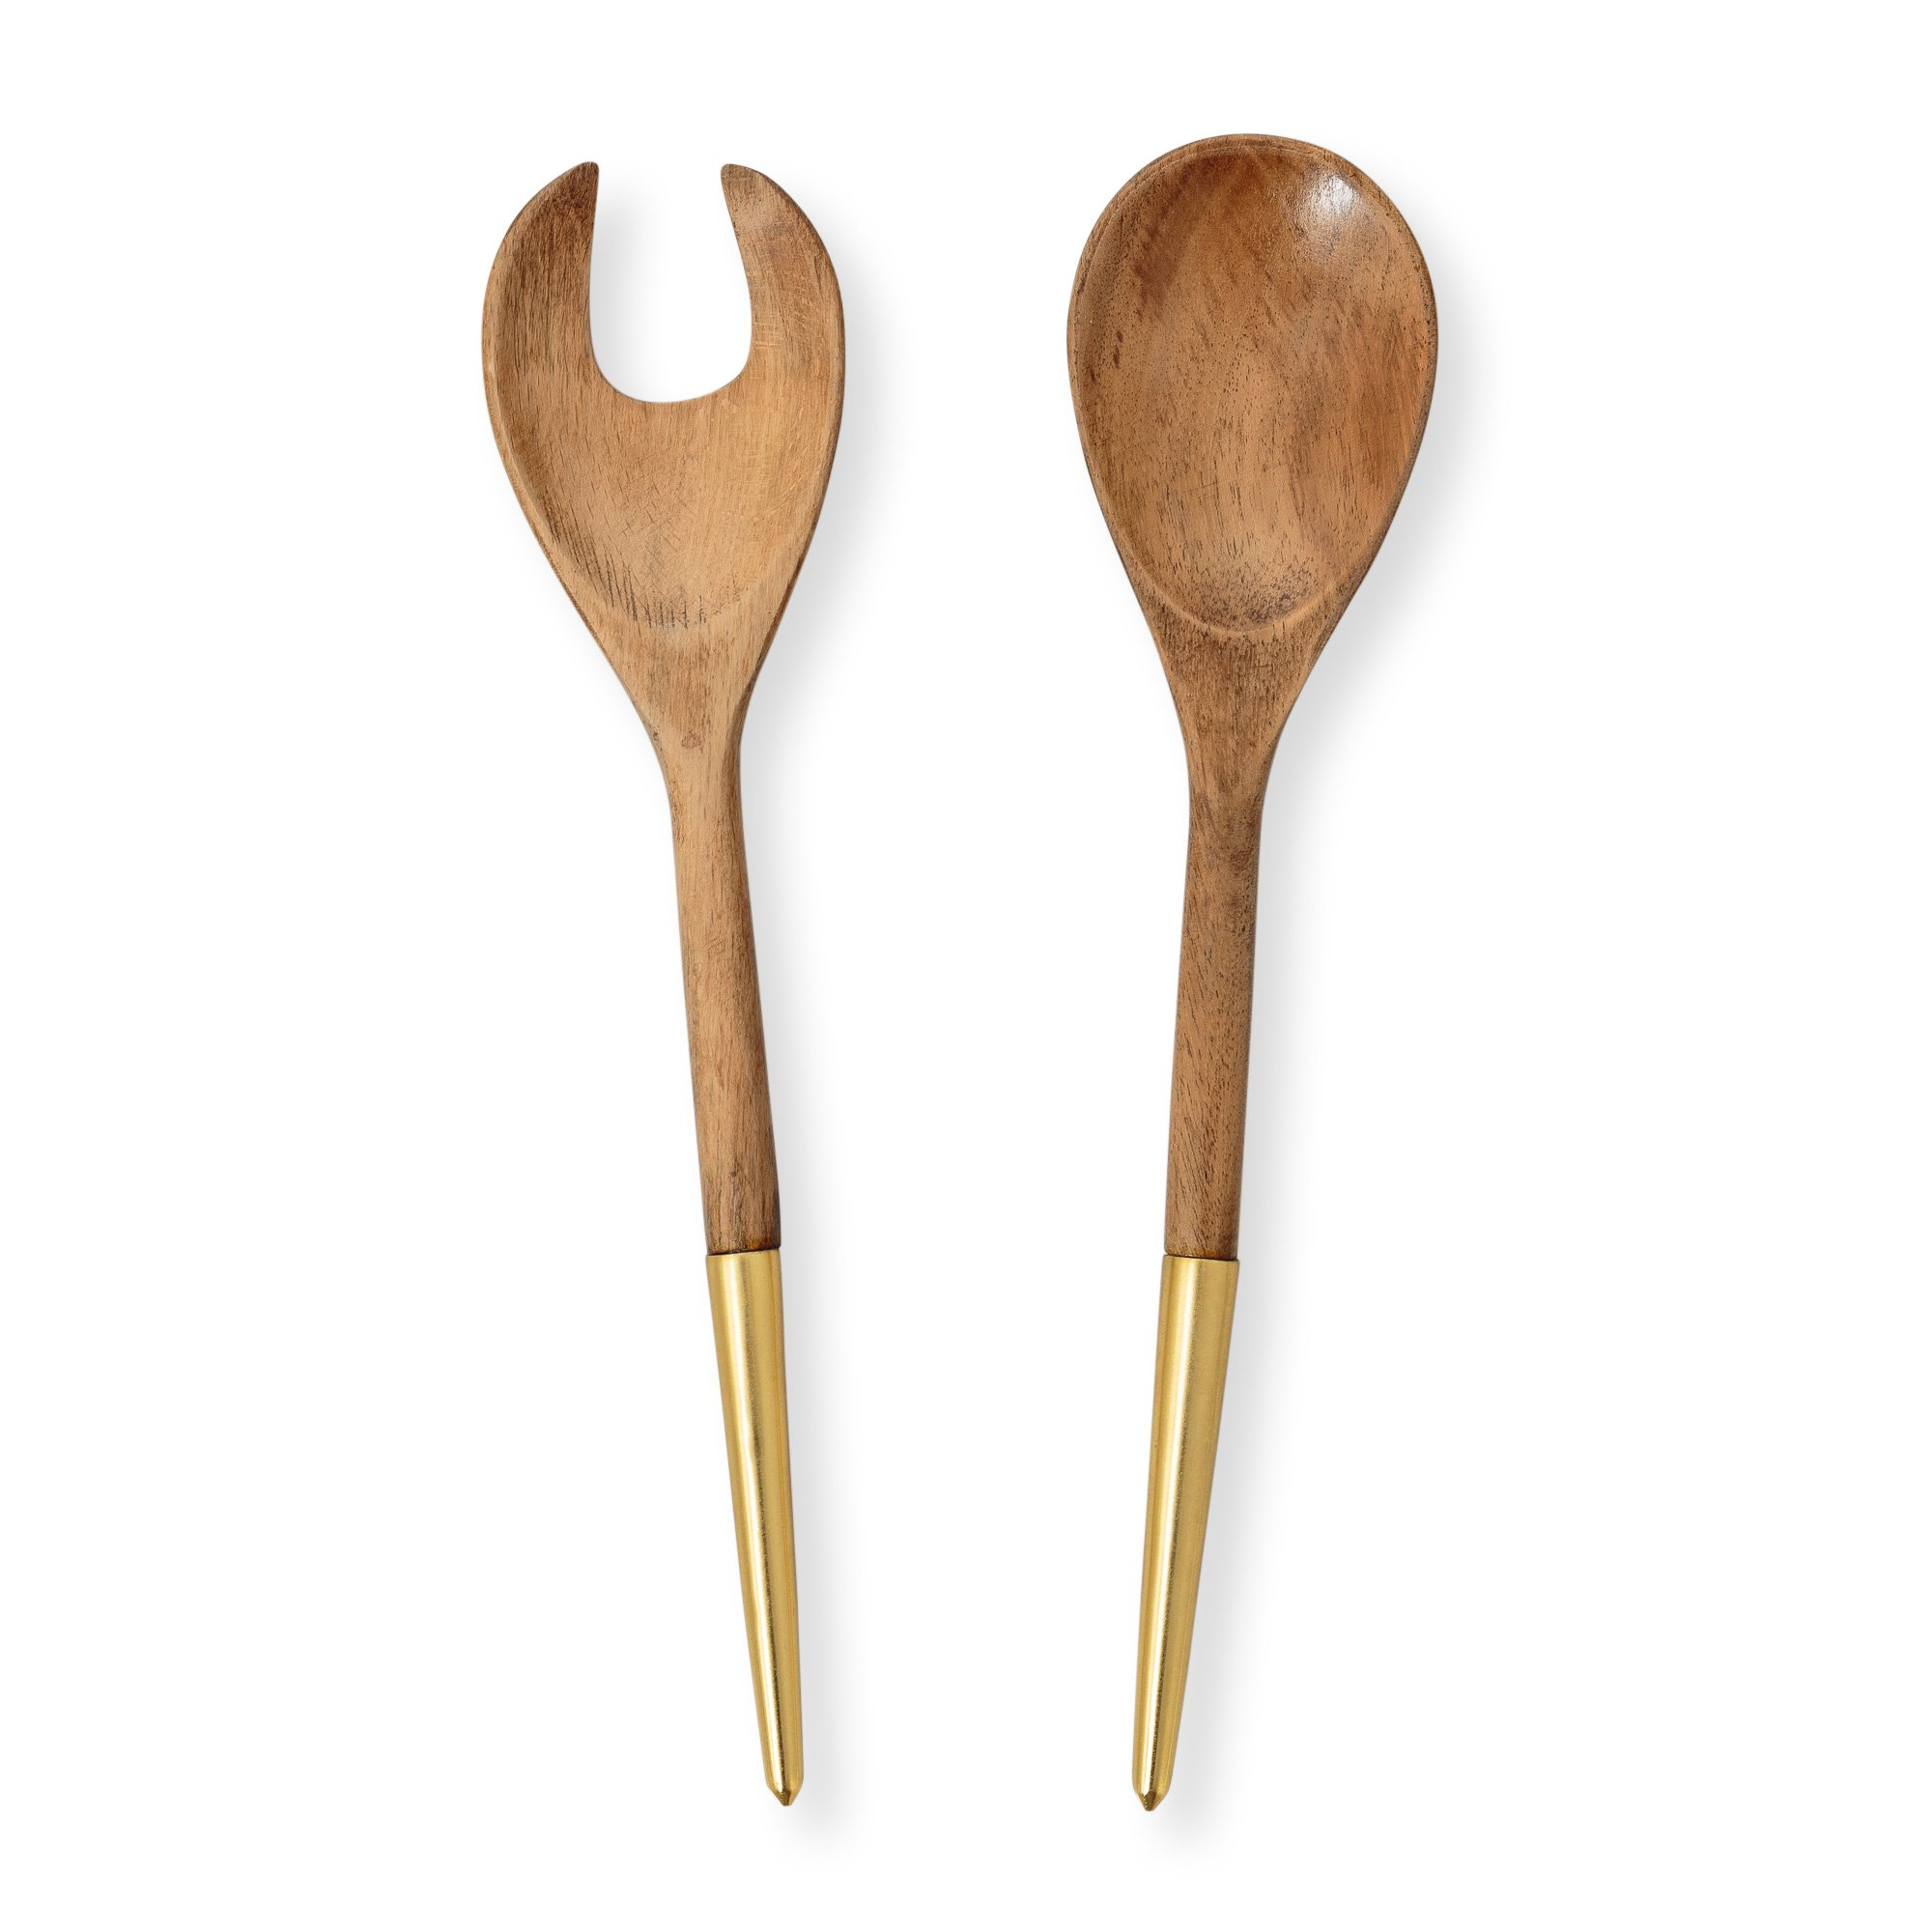 It sits in a blonde wood stand, and has matching wooden salad fork and spoon, along with 2 eight oz. cruets with corks, for holding oil and vinegar, or two of your choice of salad dressings. Whether you're entertaining friends or just having a family meal, this serving set adds simple elegance to your table setting.